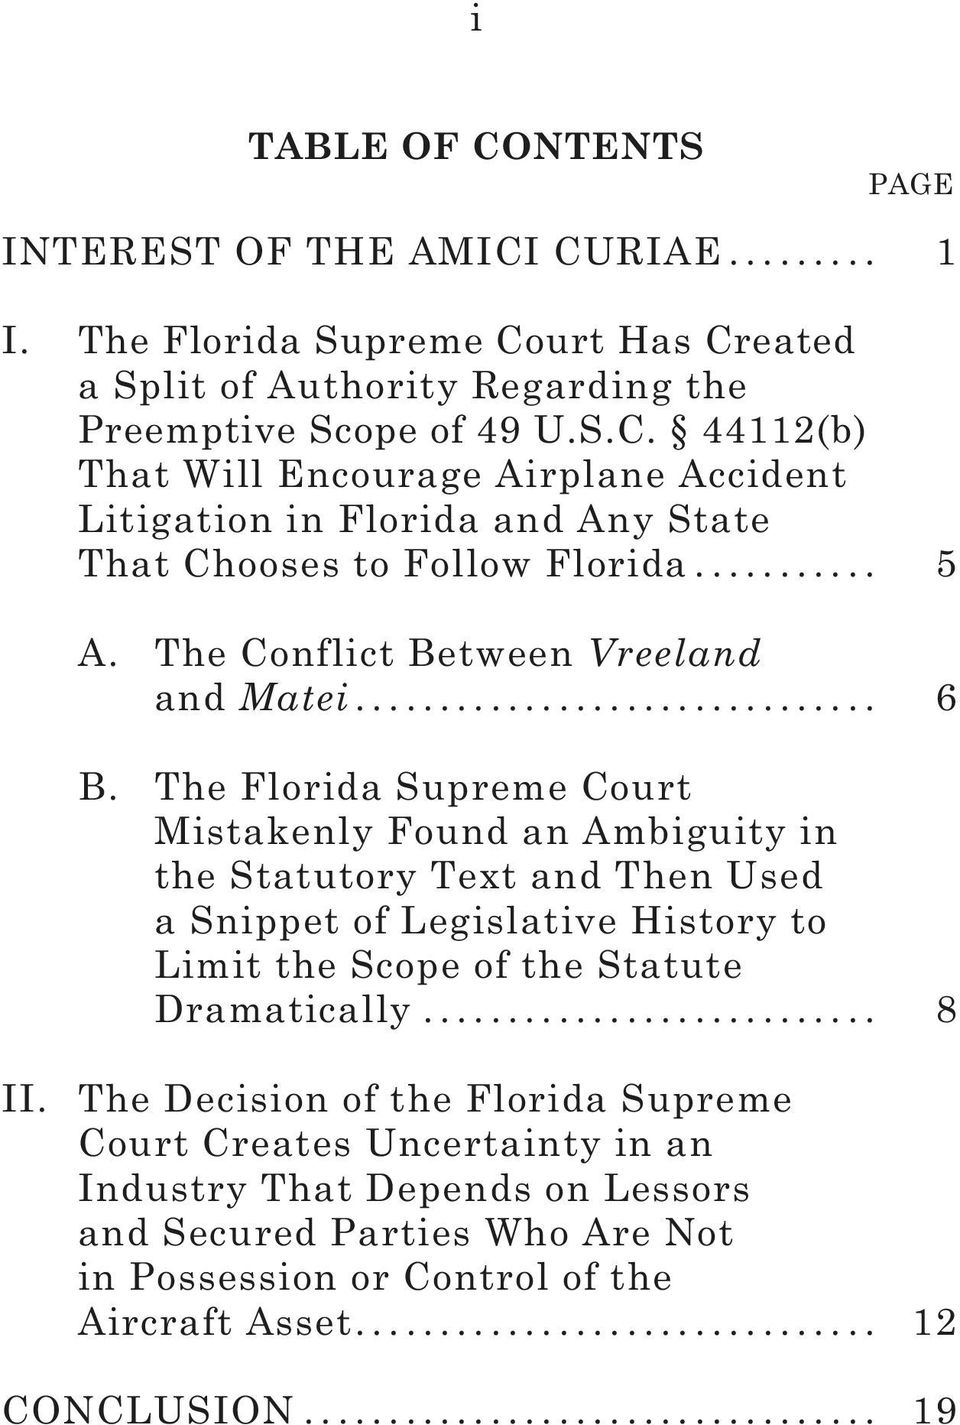 The Florida Supreme Court Mistakenly Found an Ambiguity in the Statutory Text and Then Used a Snippet of Legislative History to Limit the Scope of the Statute Dramatically... 8 II.